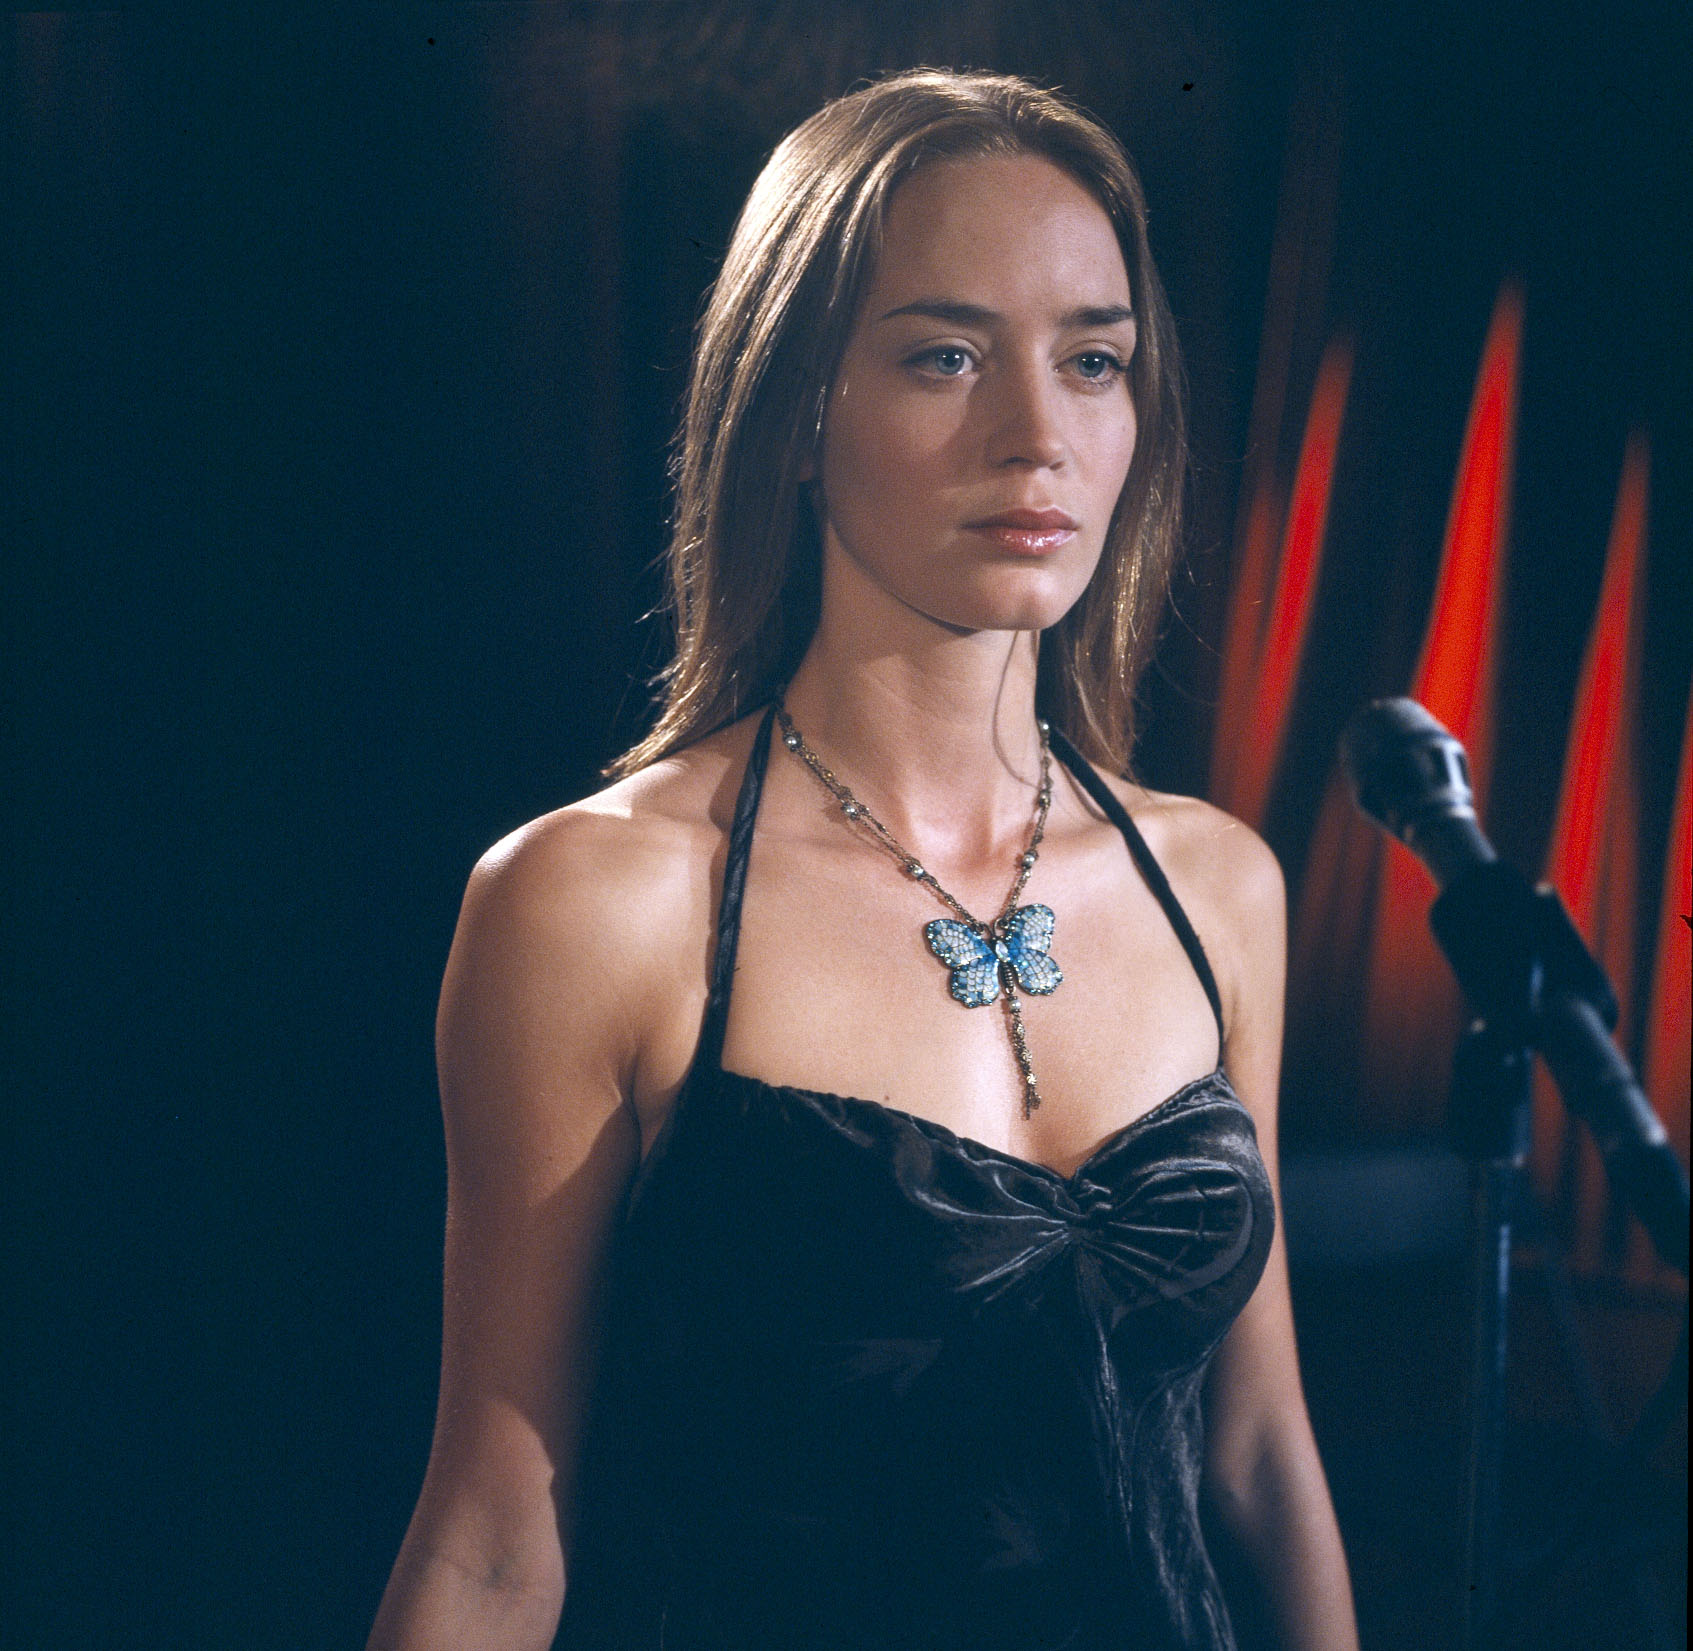 Emily Blunt as Natasha in Gideon's Daughter (2006)